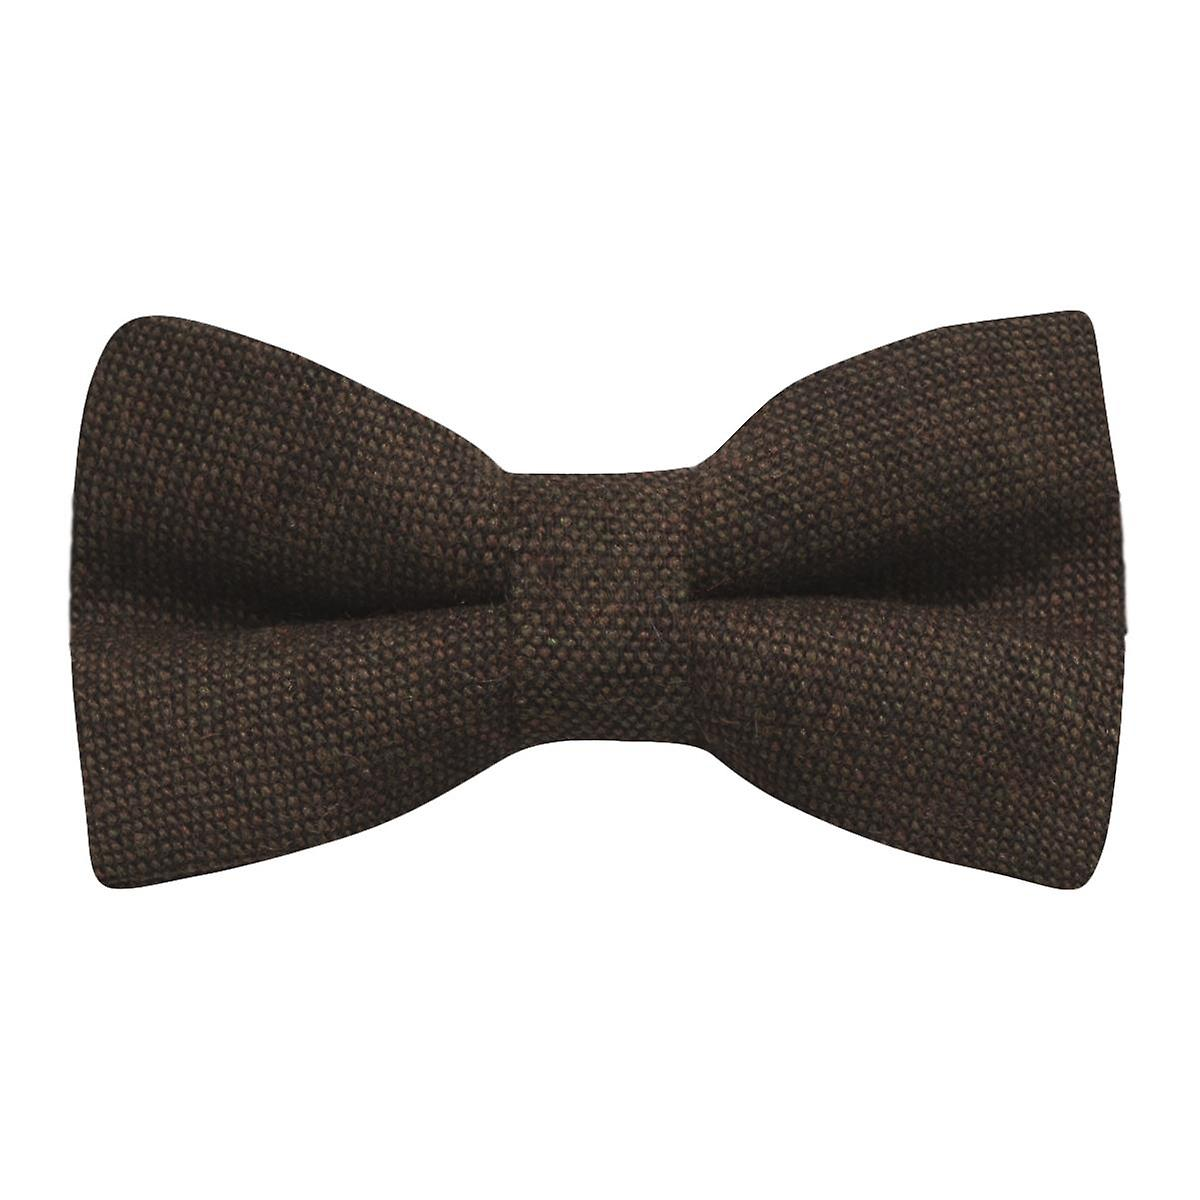 Highland Weave Cocoa Brown Bow Tie